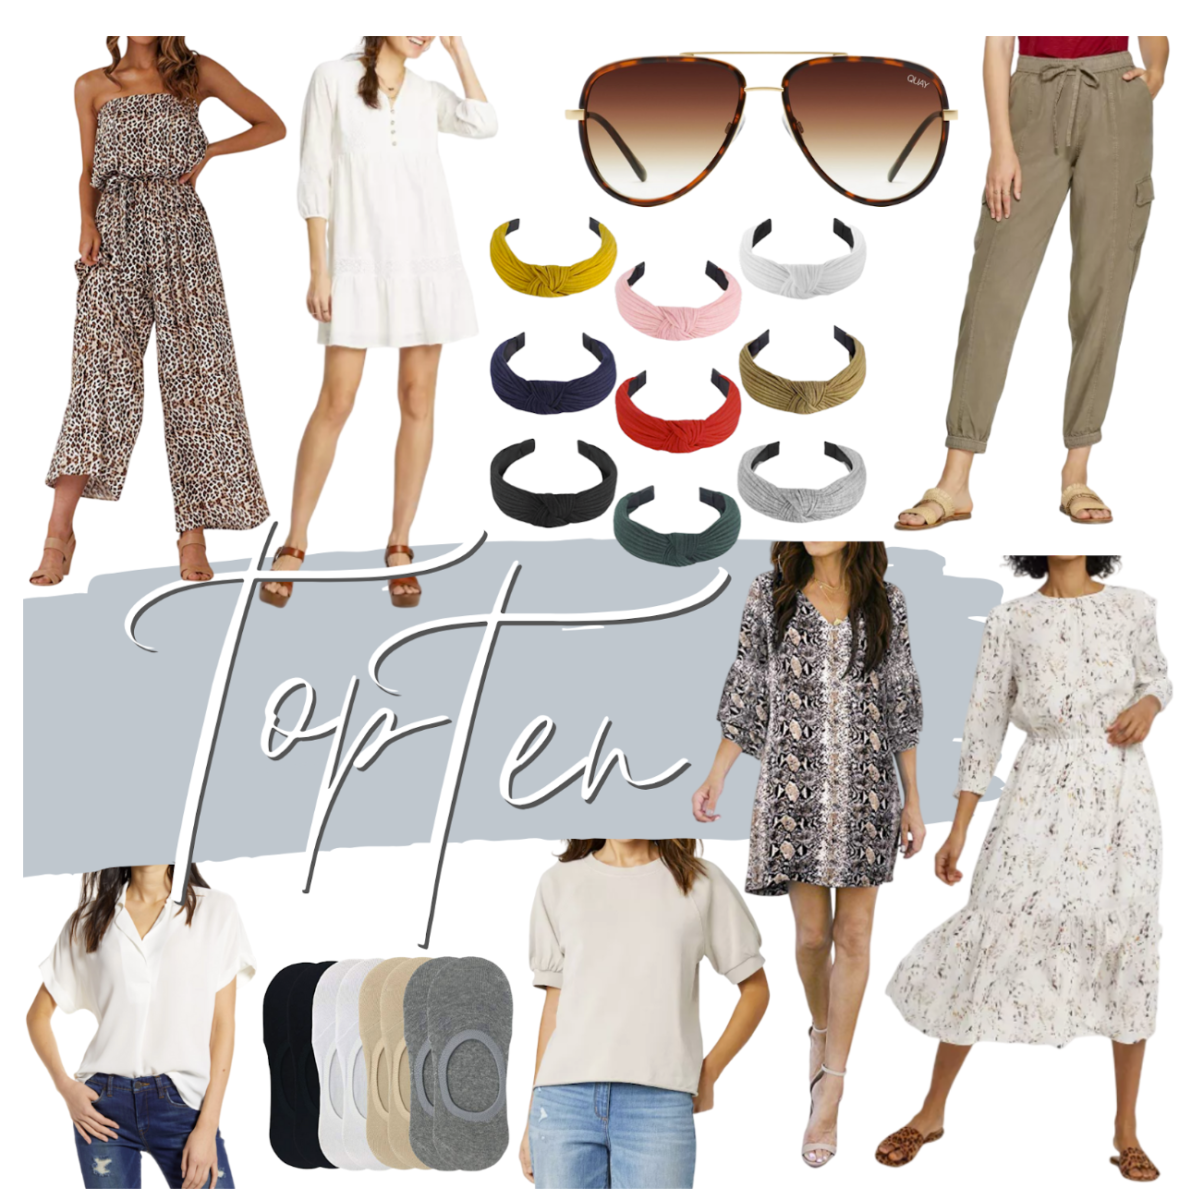 Early Spring Best Sellers | Spring Clothing by popular Houston fashion blog, Haute and Humid: collage image of knot headbands, dresses, no-show socks, Quay sunglasses, blouses, and cargo pants.